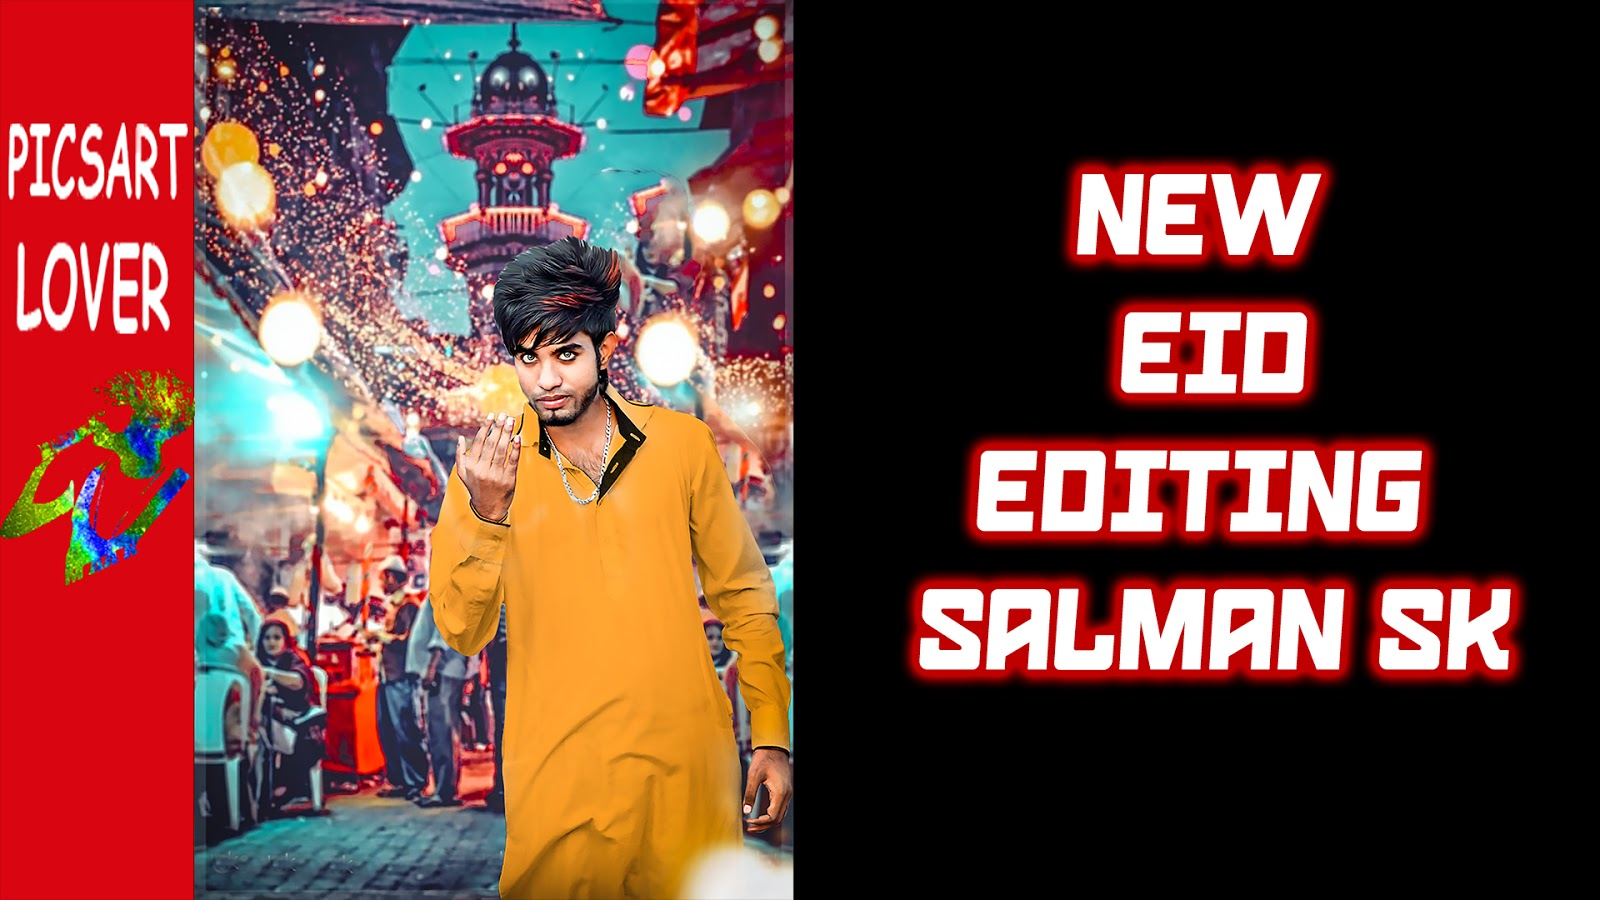 EID EDITING 2018 SALMAN SK MEEM EDITING PNG IMAGE BACKGROUND DOWNLOAD